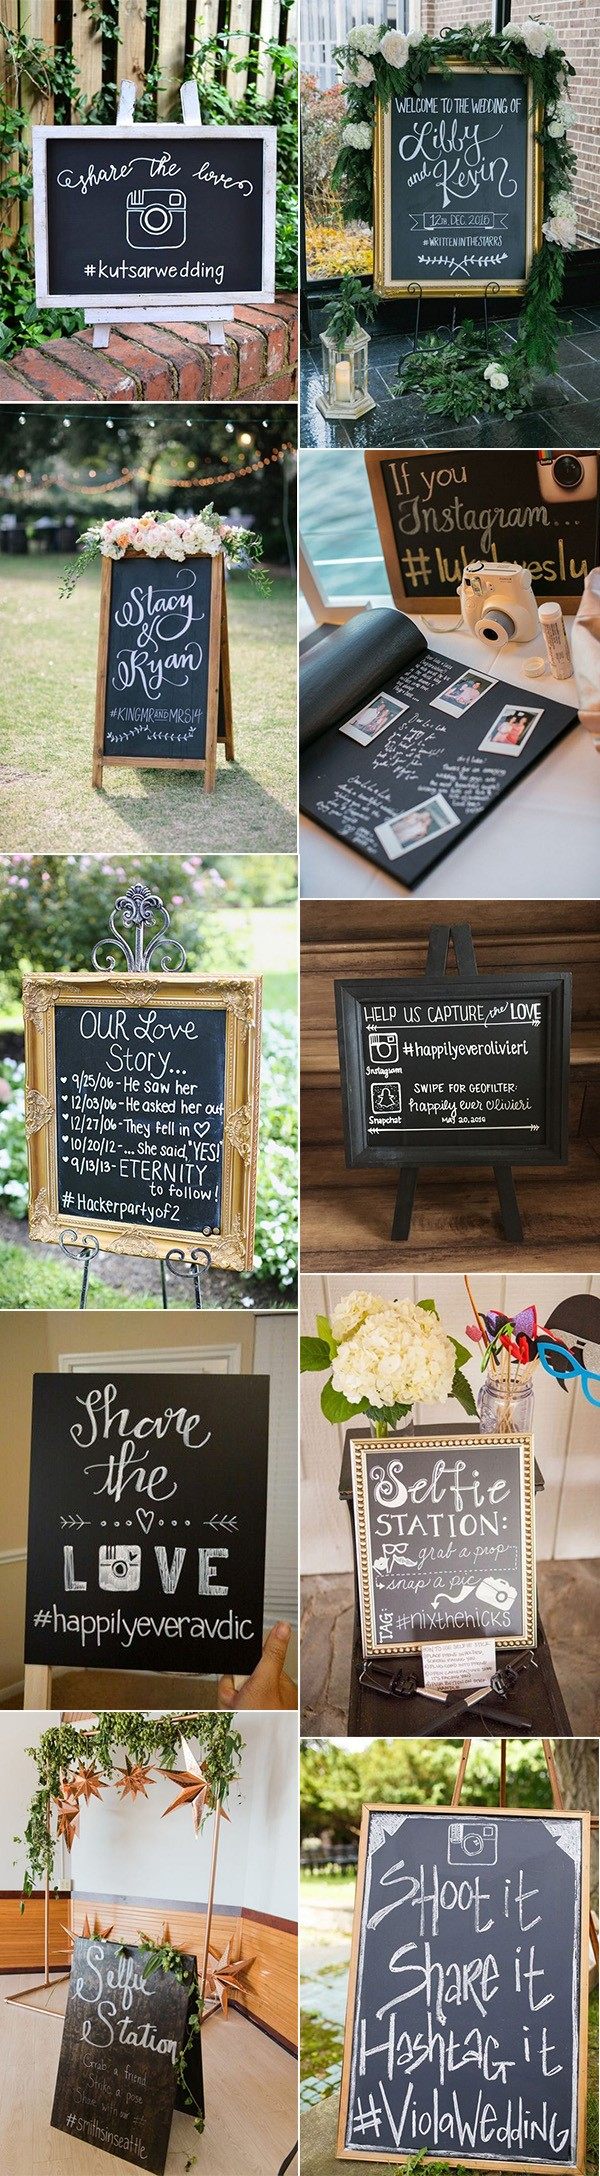 chic chalkboard wedding hashtag sign ideas